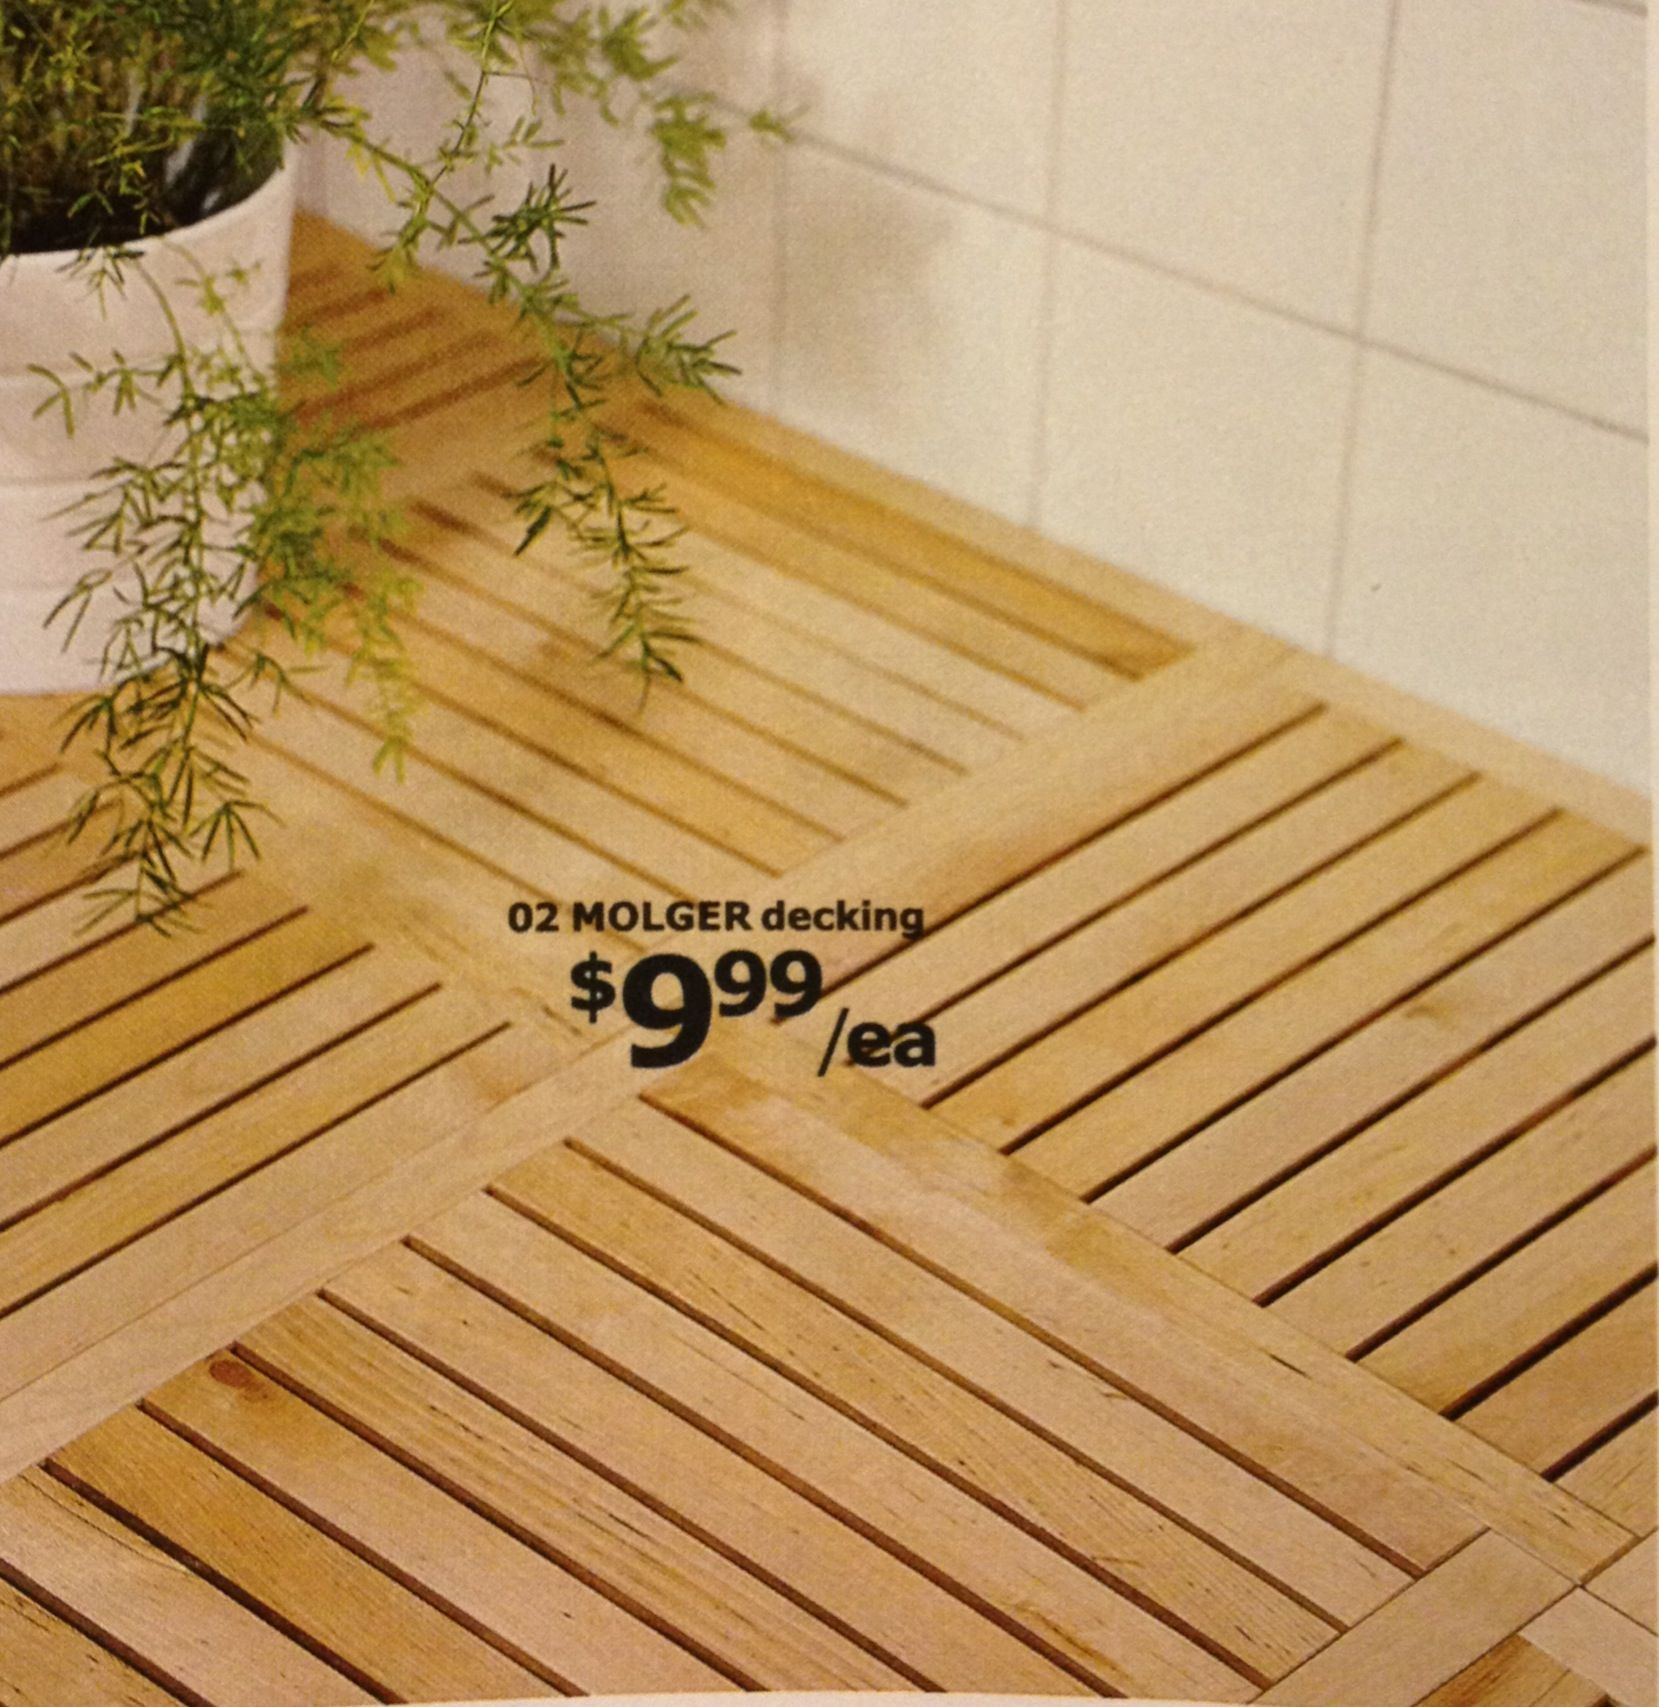 stunning molger decking shown in ikea catalog as flooring. Black Bedroom Furniture Sets. Home Design Ideas